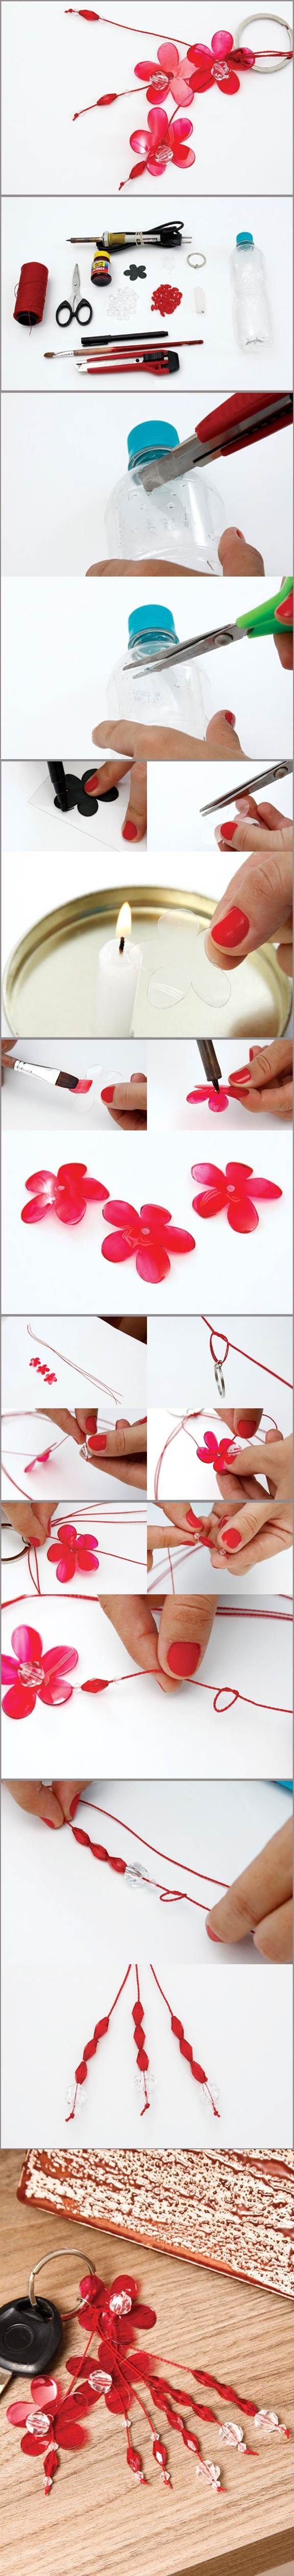 DIY Flower Key Chains from Plastic Bottle | iCreativeIdeas.com Like Us on Facebook ==> https://www.facebook.com/icreativeideas